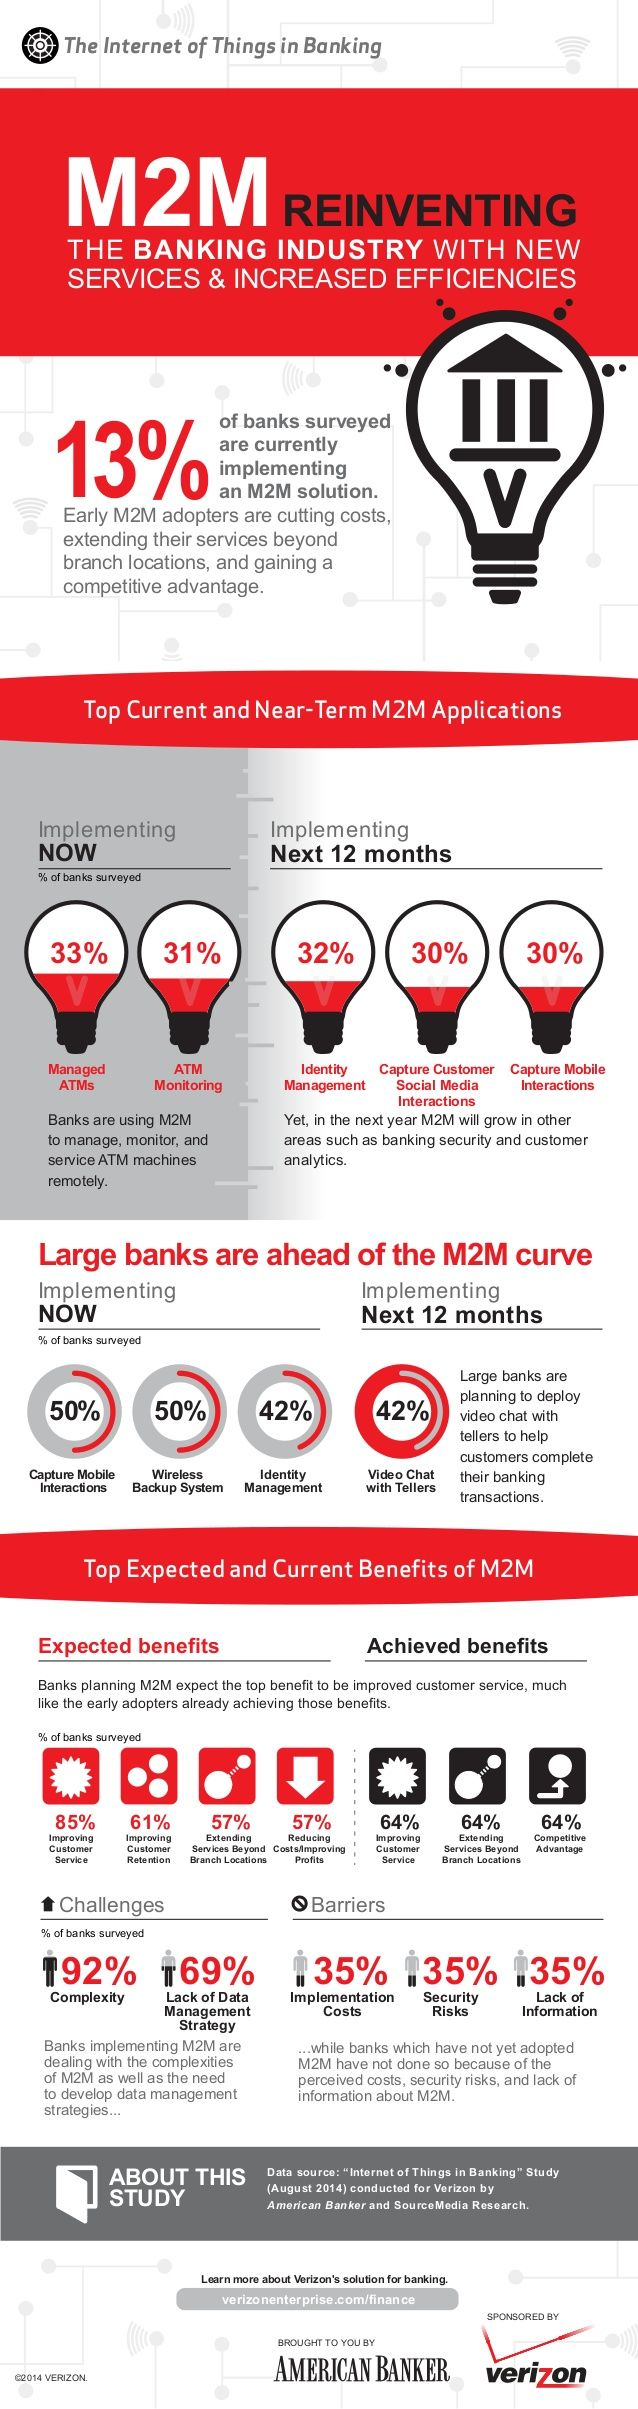 Infographic: M2M Reinventing the Banking Industry